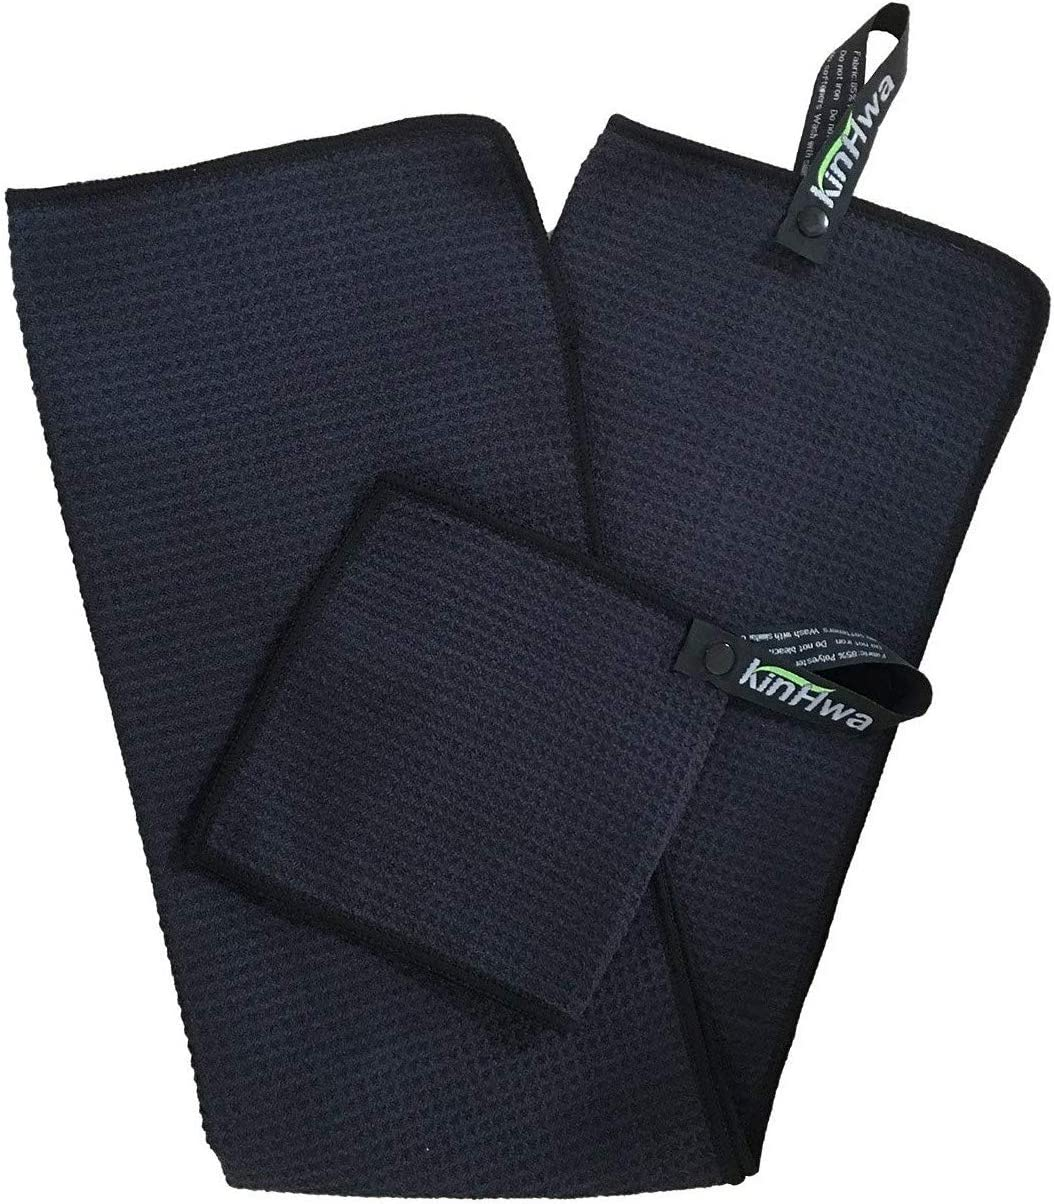 KinHwa Waffle Golf Towel 14inch X 30inch Microfiber Golf Towels with Clip and Small Golf Ball Towel 6inch X 6inch Black